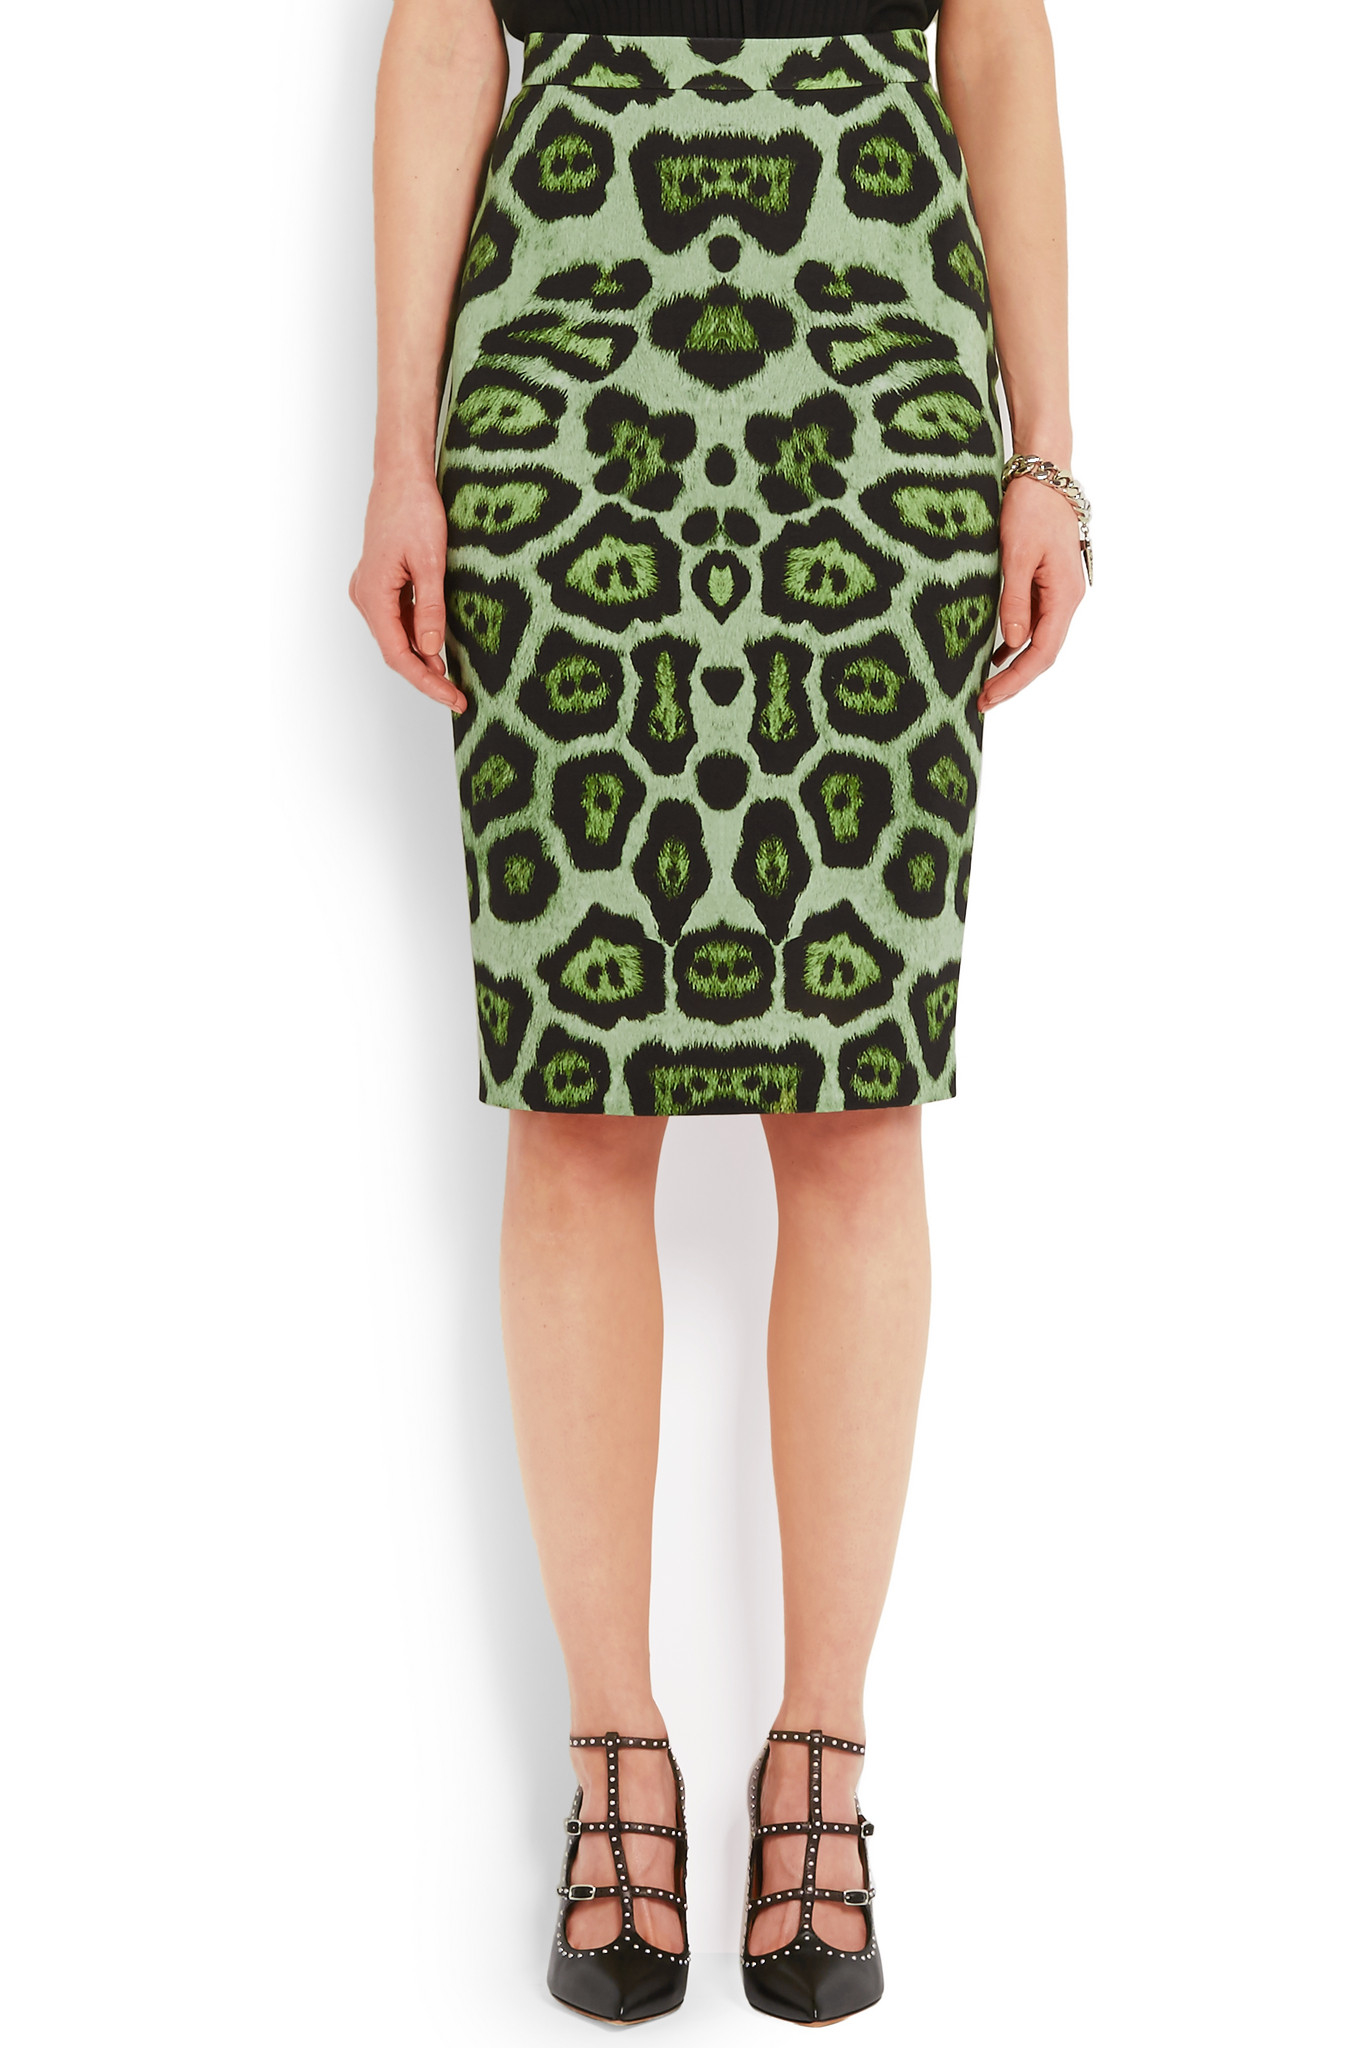 Lyst - Givenchy Skirt In Green Leopard-print Stretch-jersey 2e6fe79ef